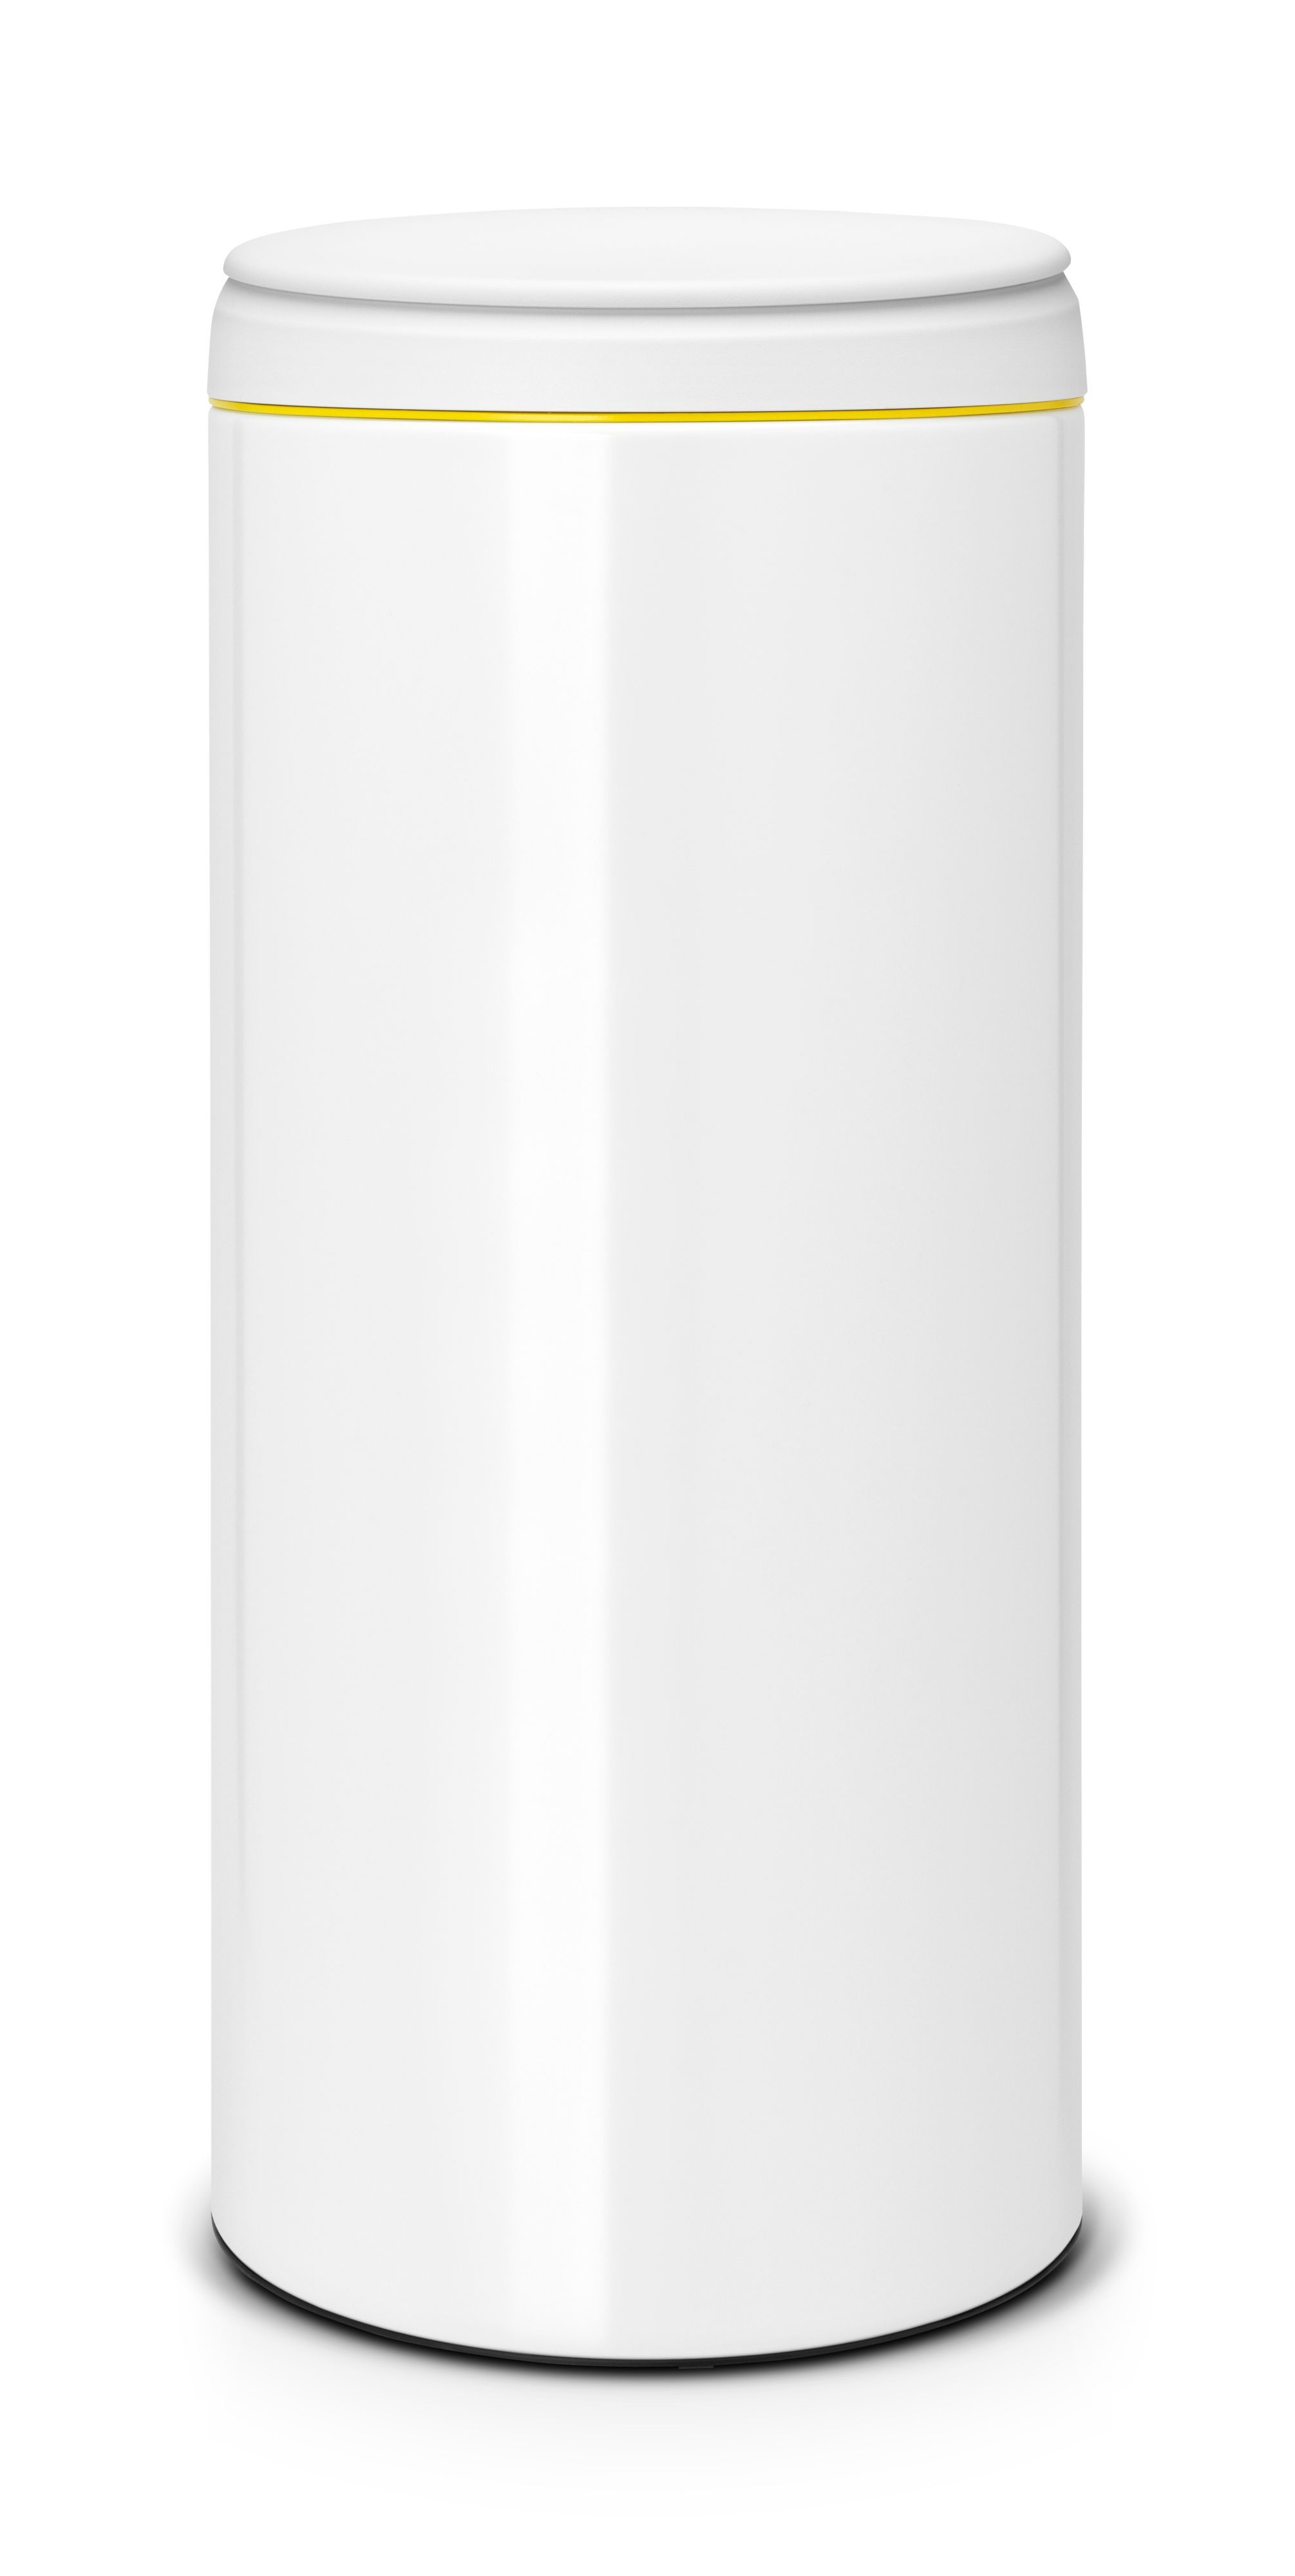 White Kitchen Bin brabantia gloss white metal round flip top kitchen bin, 30l | bins